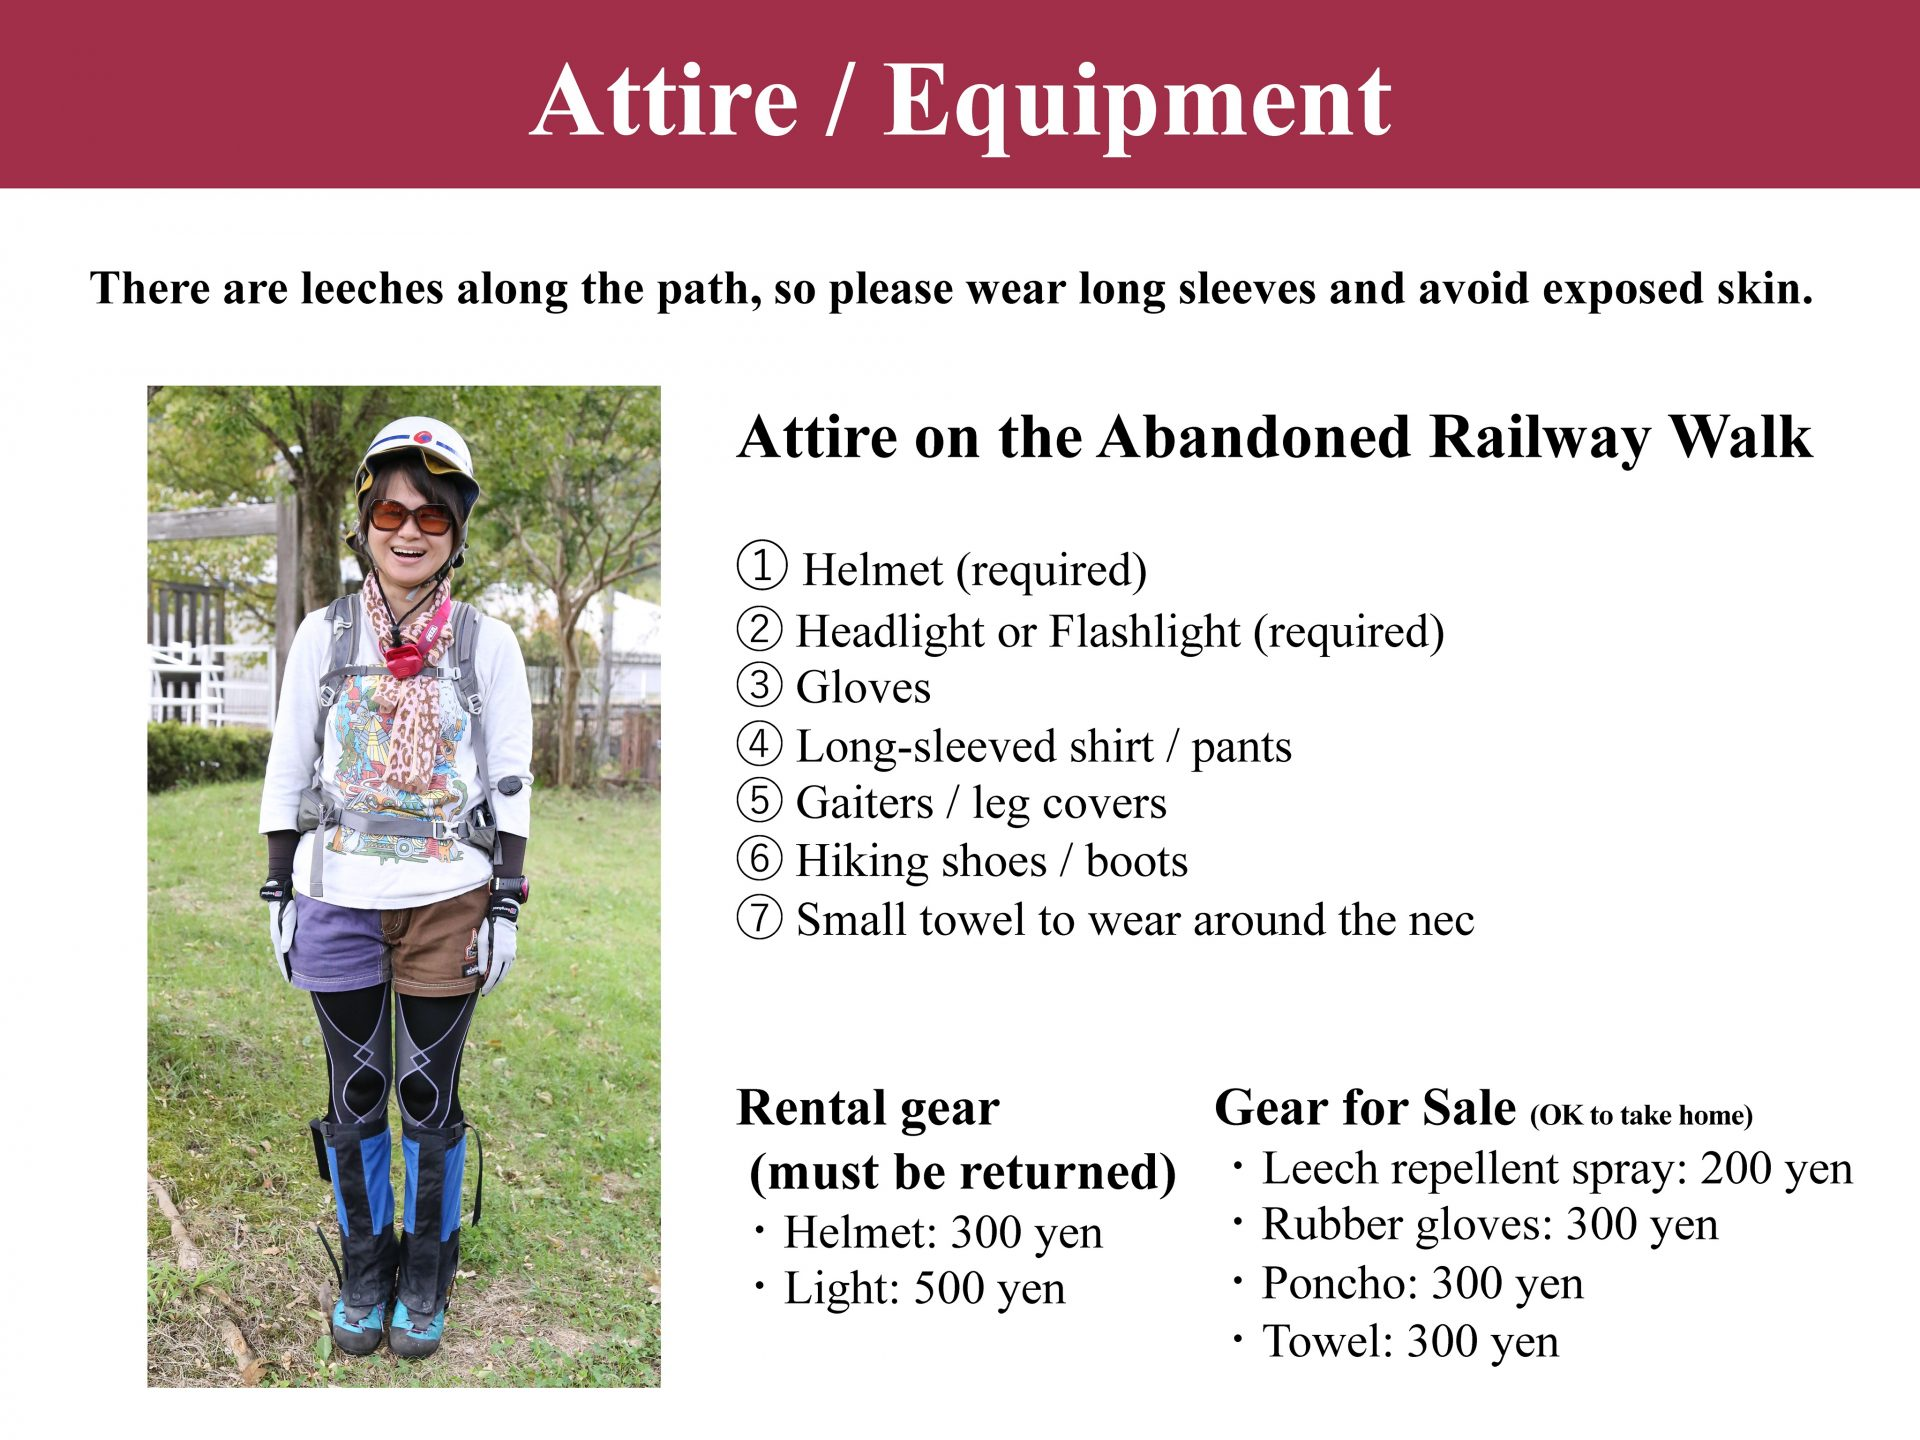 Attire - Equipment